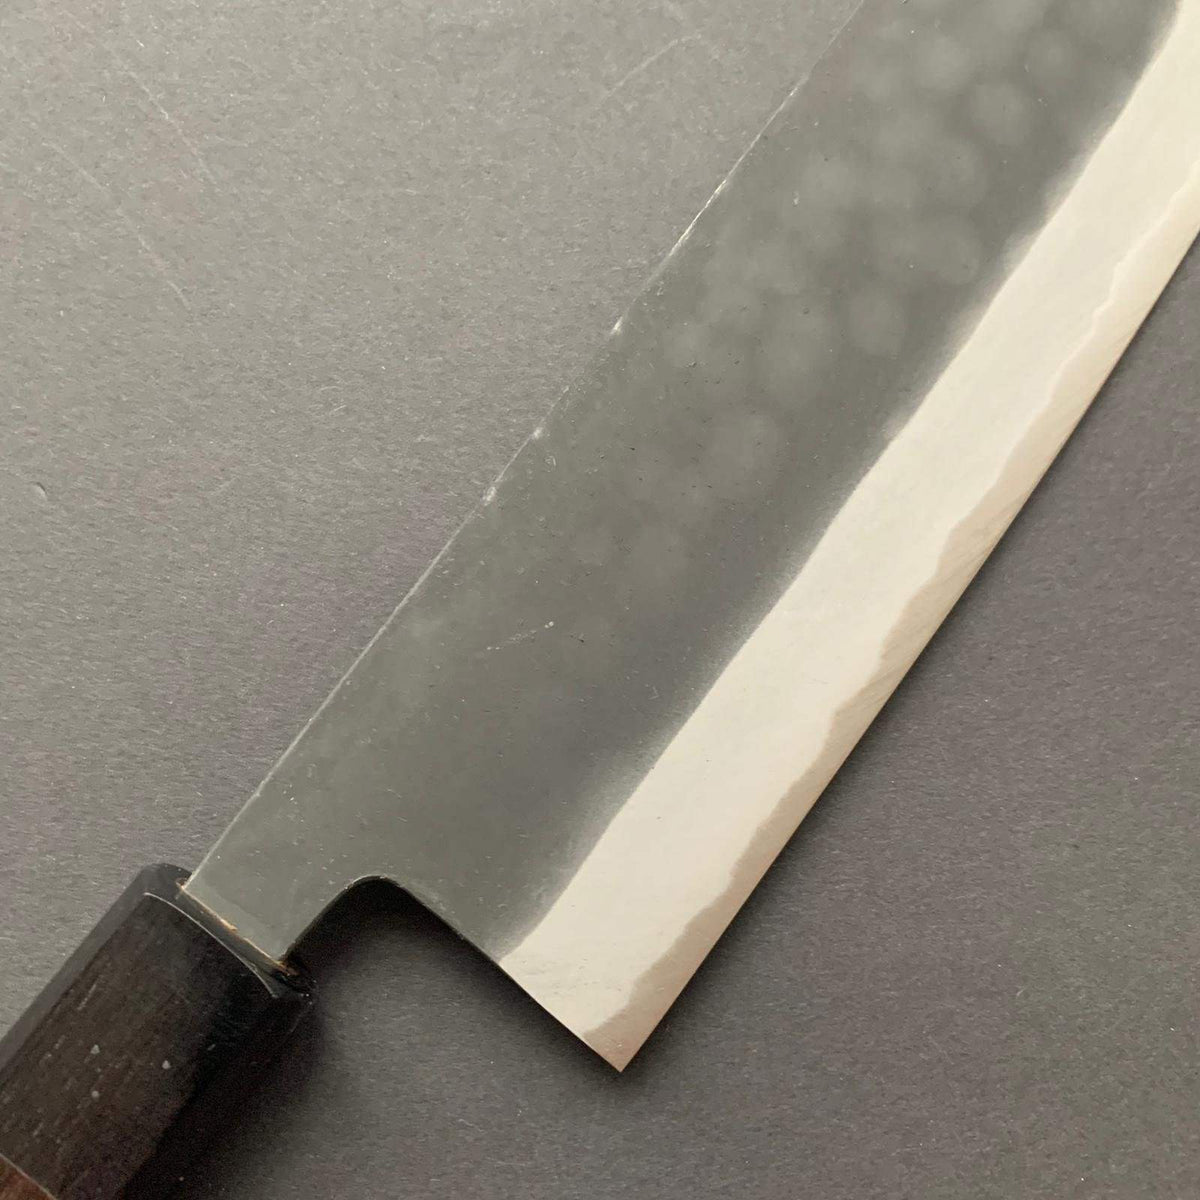 Nakiri knife, Aogami 2 with iron cladding, kurouchi finish - Kamo